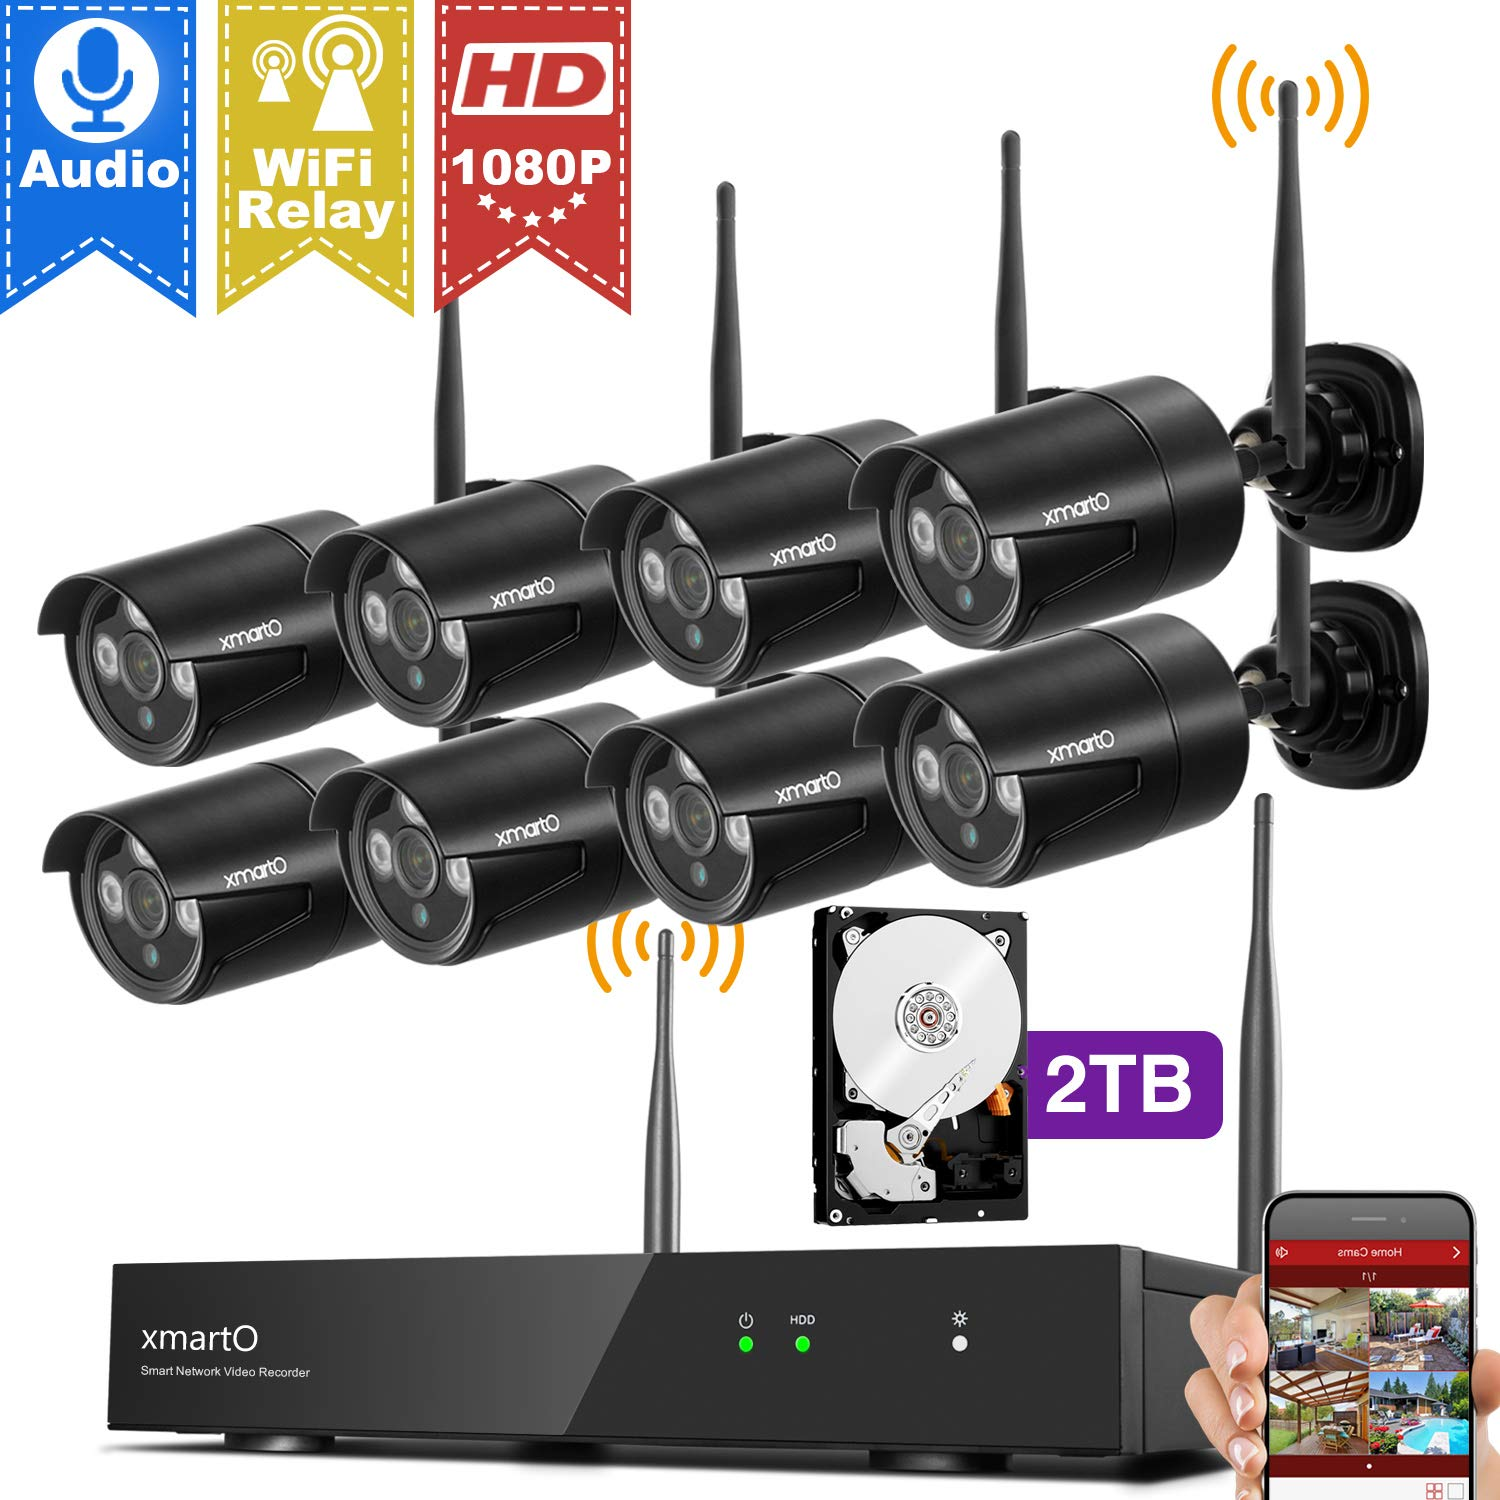 [1080p HD & Audio Compatible] xmartO 8CH 1080p HD Outdoor Wireless Security Surveillance Camera System with 8pcs 1080p HD Wireless Security Cameras and 2TB HDD, NVR with Built-in WiFi Router, 80ft IR by xmartO